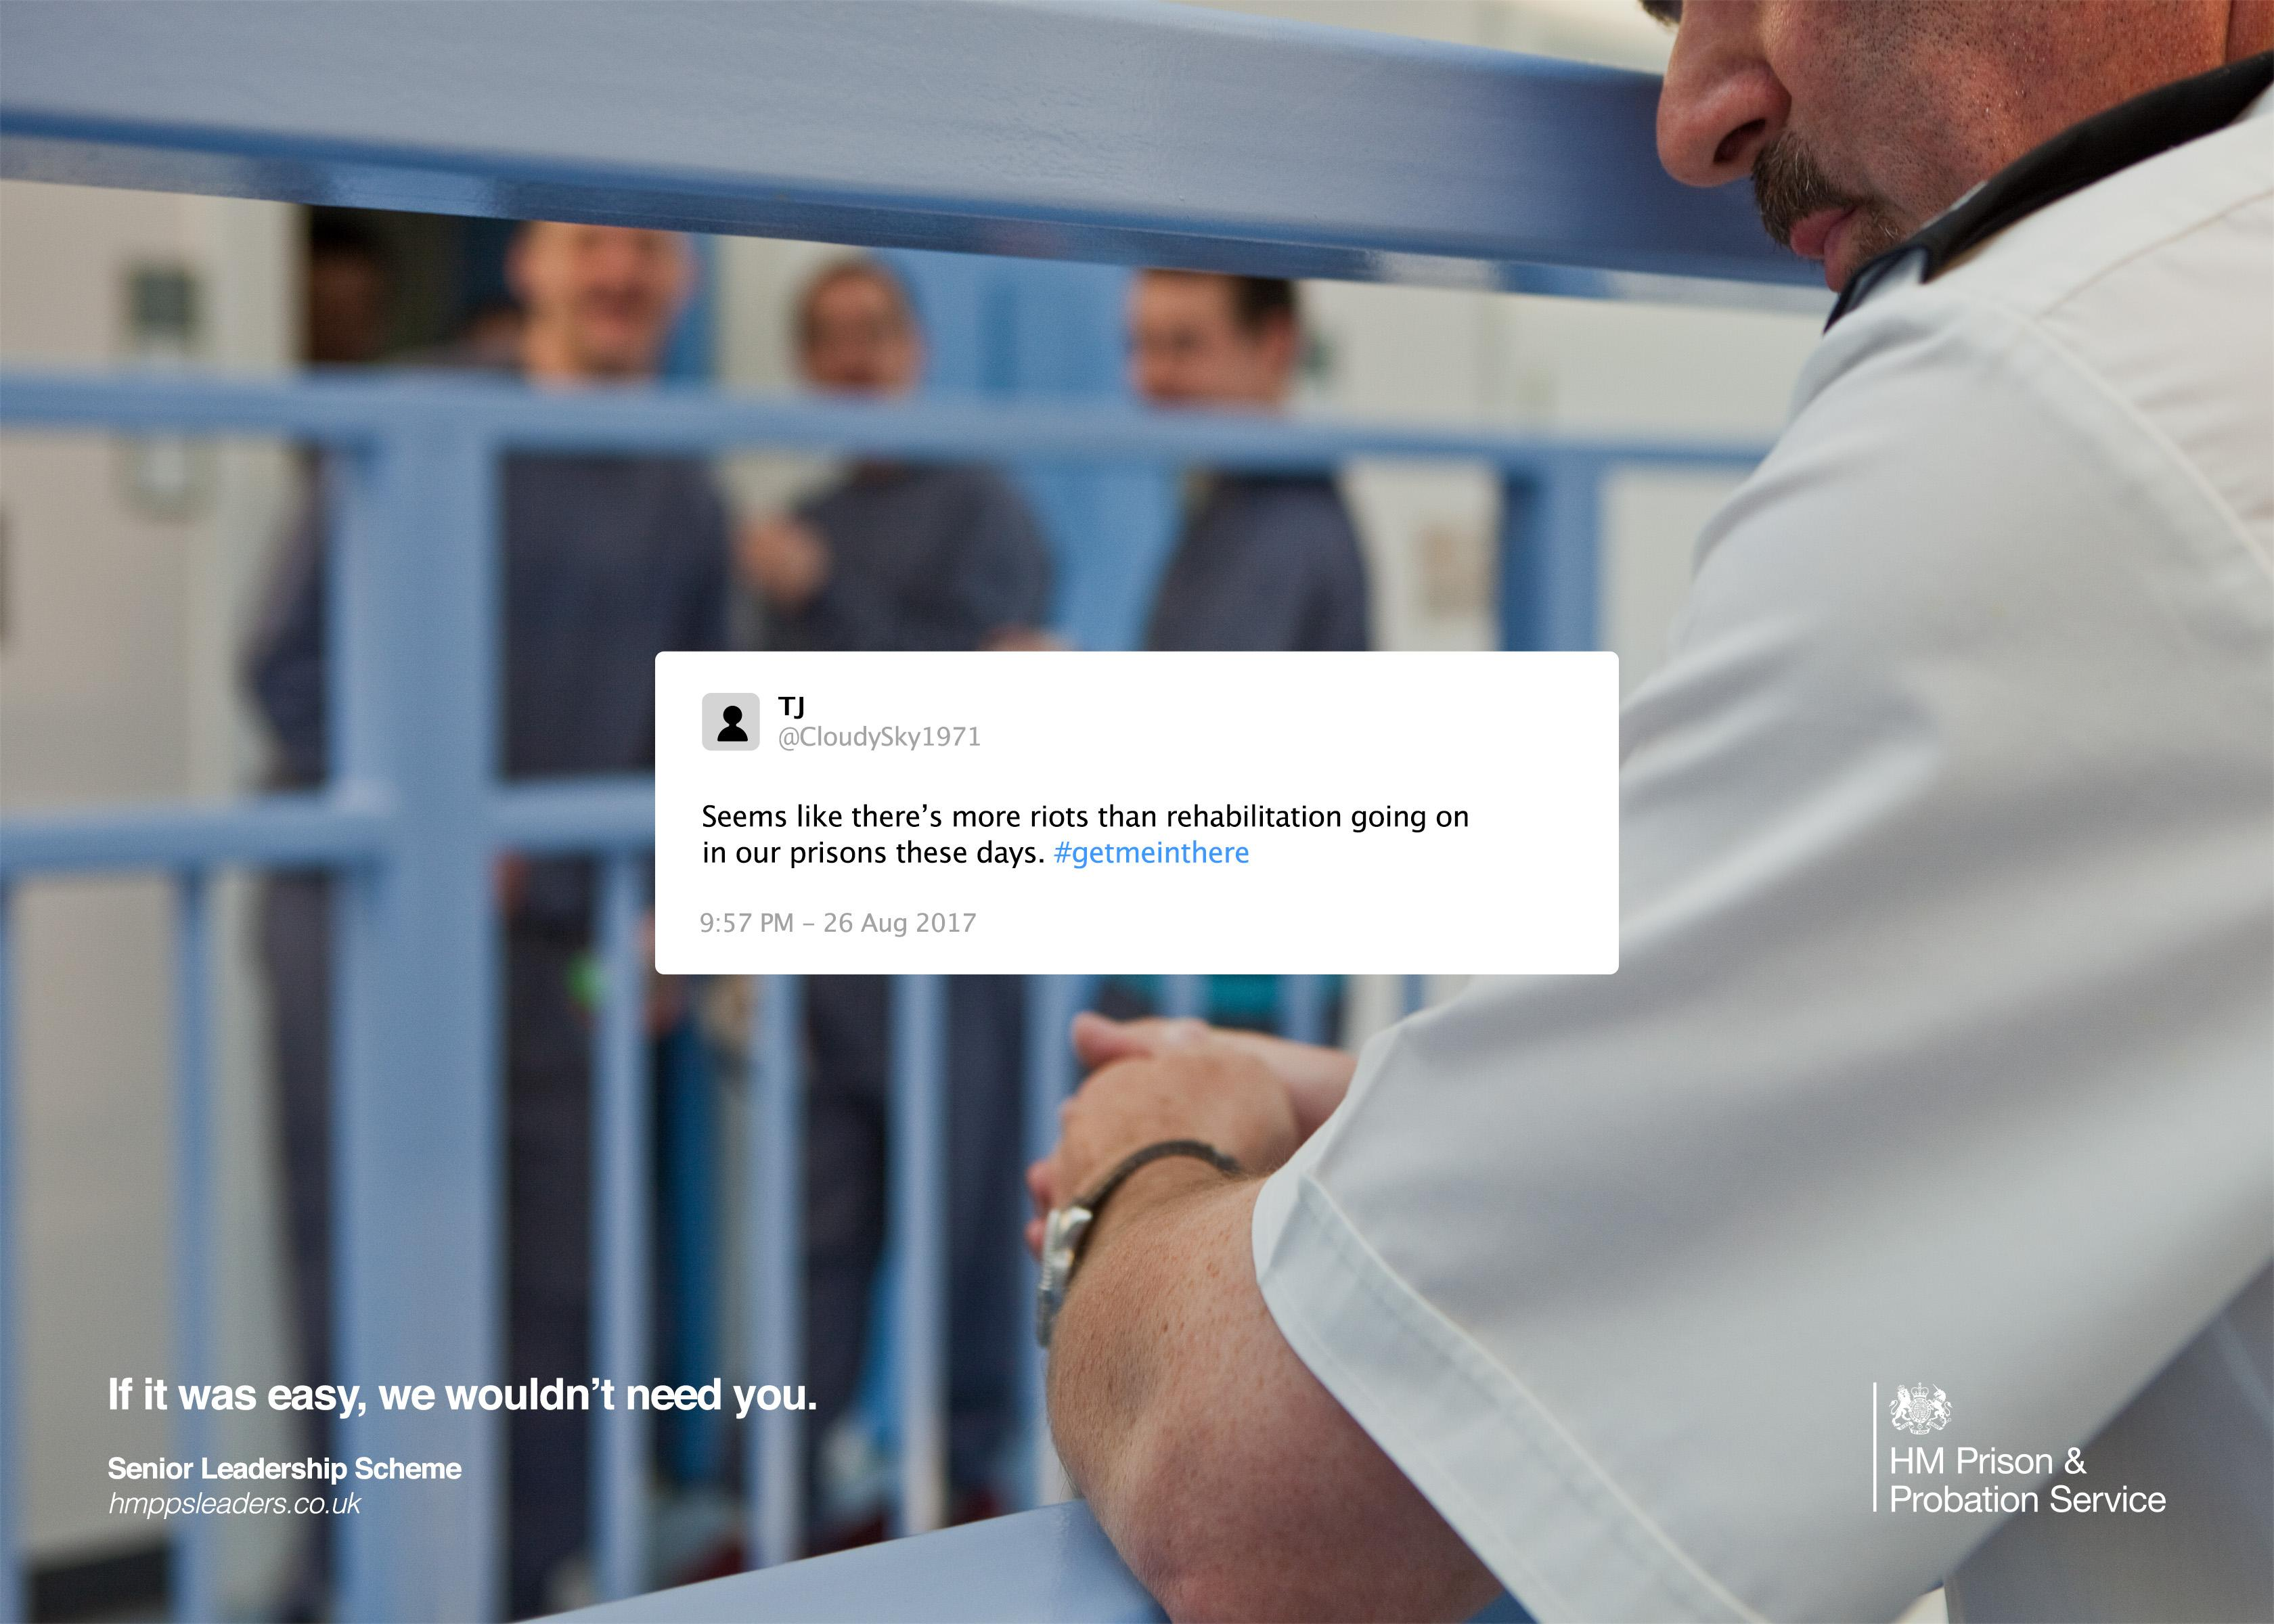 Her Majesty's Prison & Probation Service Digital Ad - If It Was Easy, We Wouldn't Need You, 2